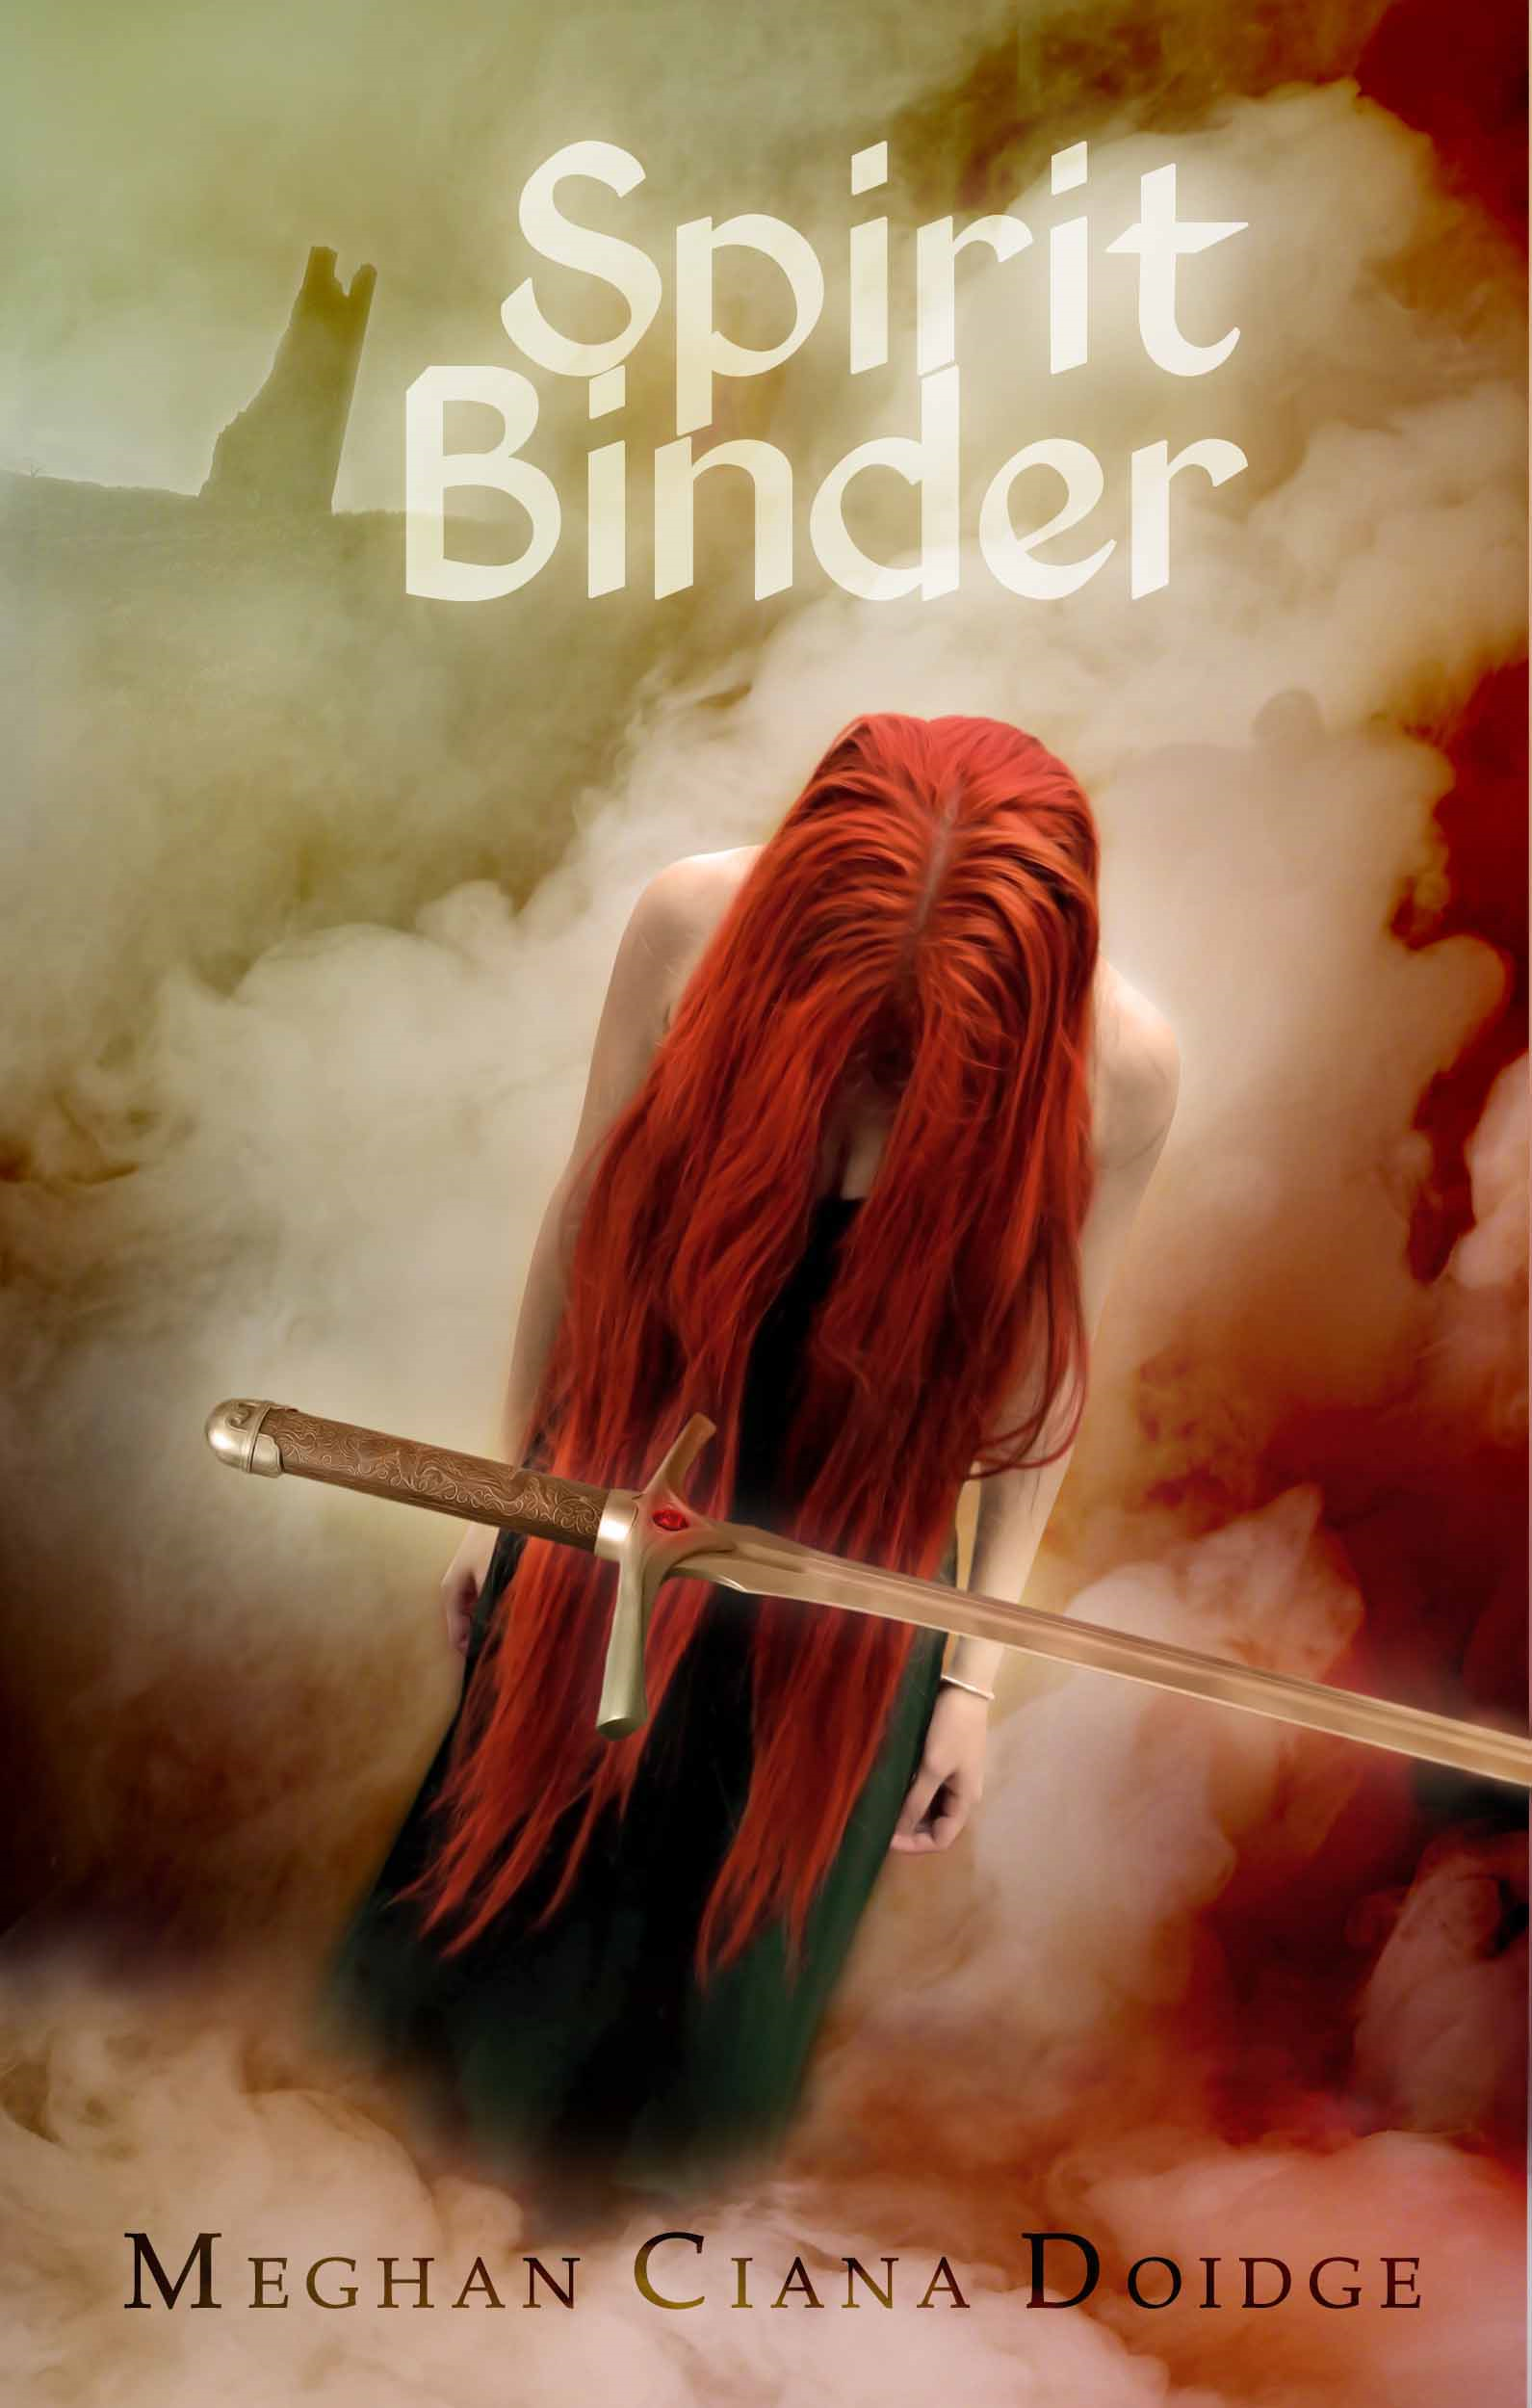 Spirit Binder By: Meghan Ciana Doidge